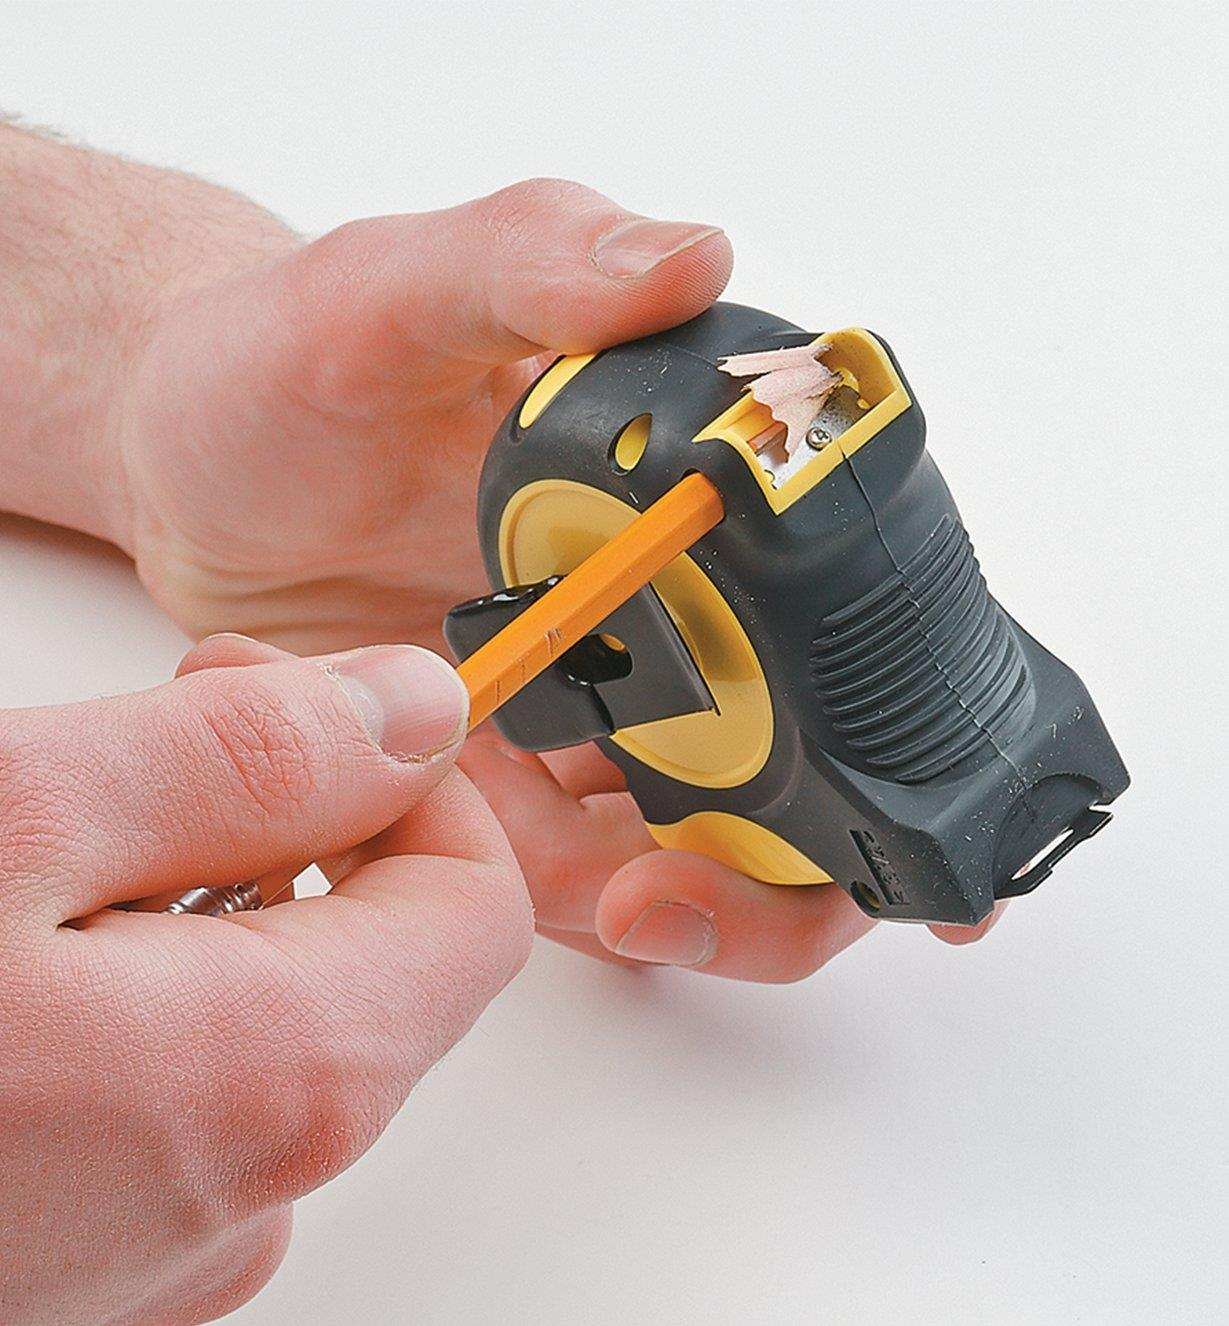 Pencil being sharpened in the built-in pencil sharpener